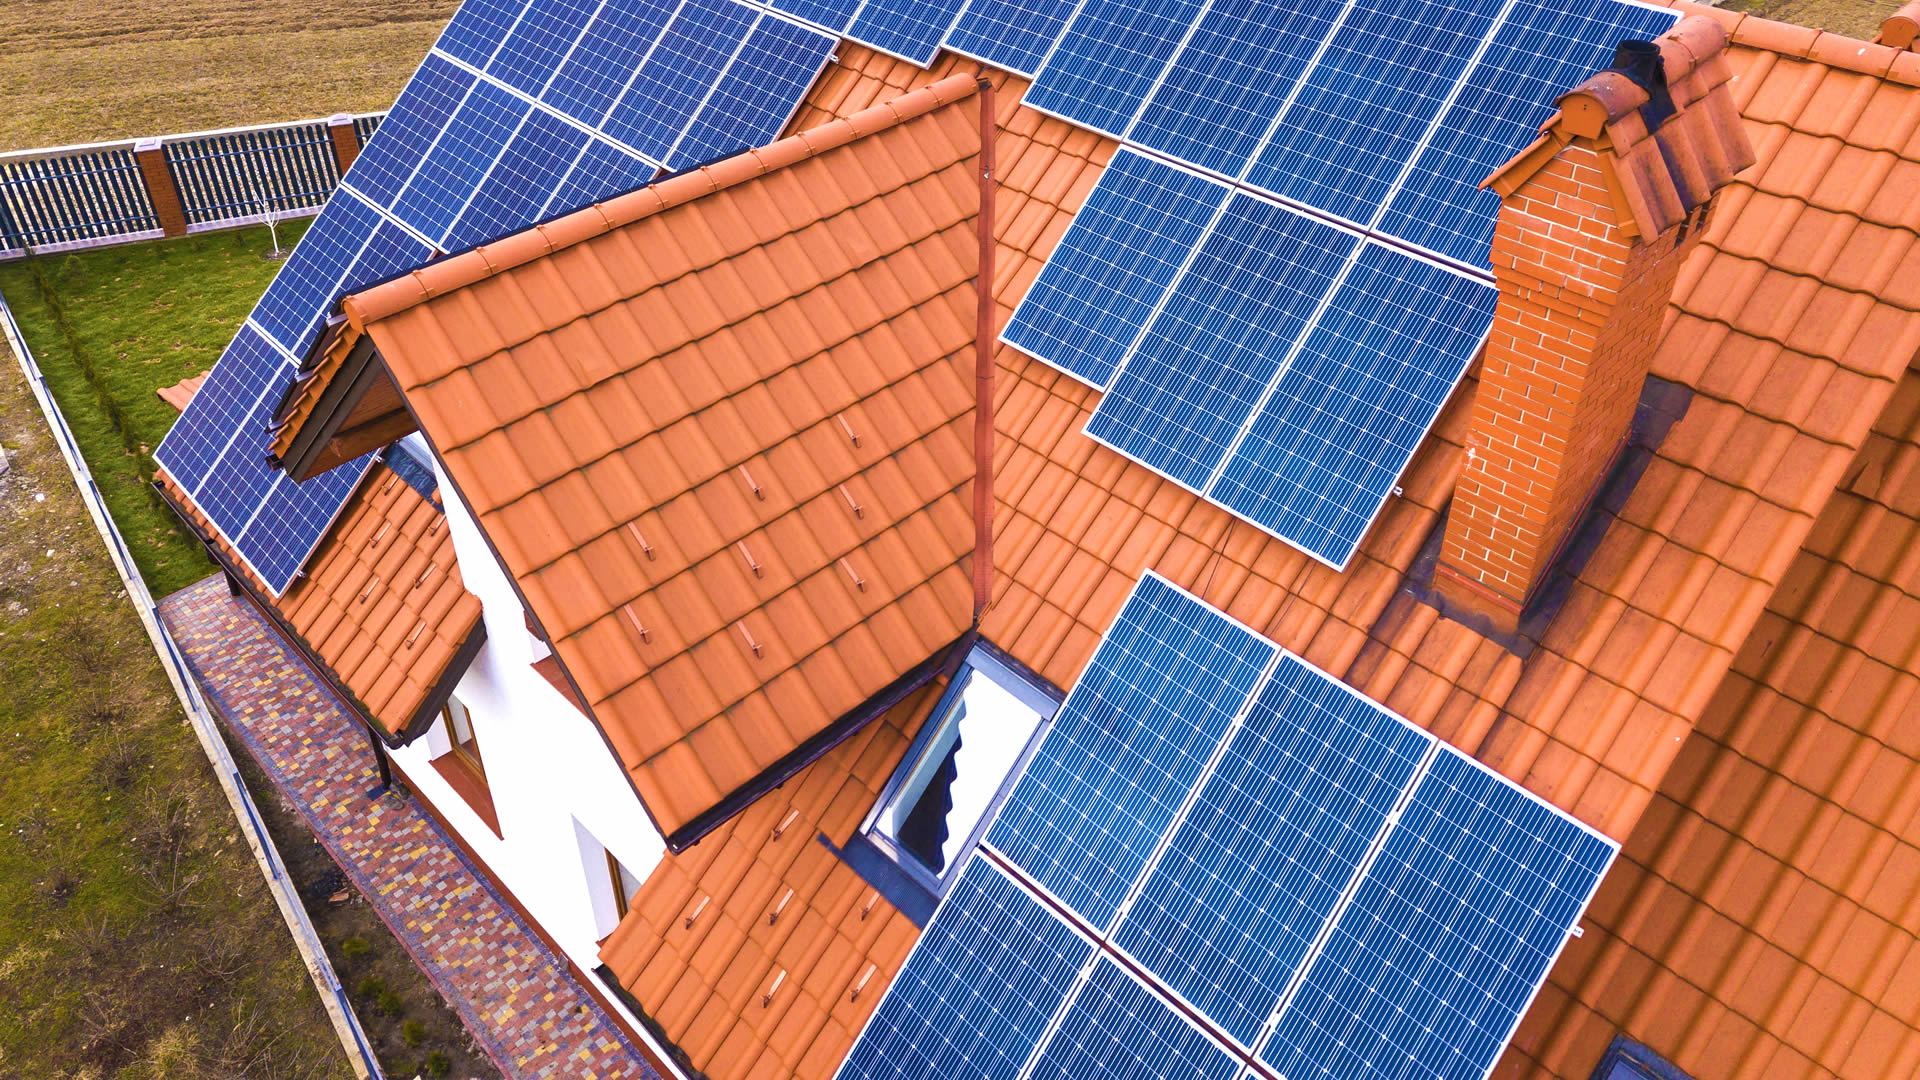 Northern Ireland Domestic Property with Solar Panels Installed on the Roof